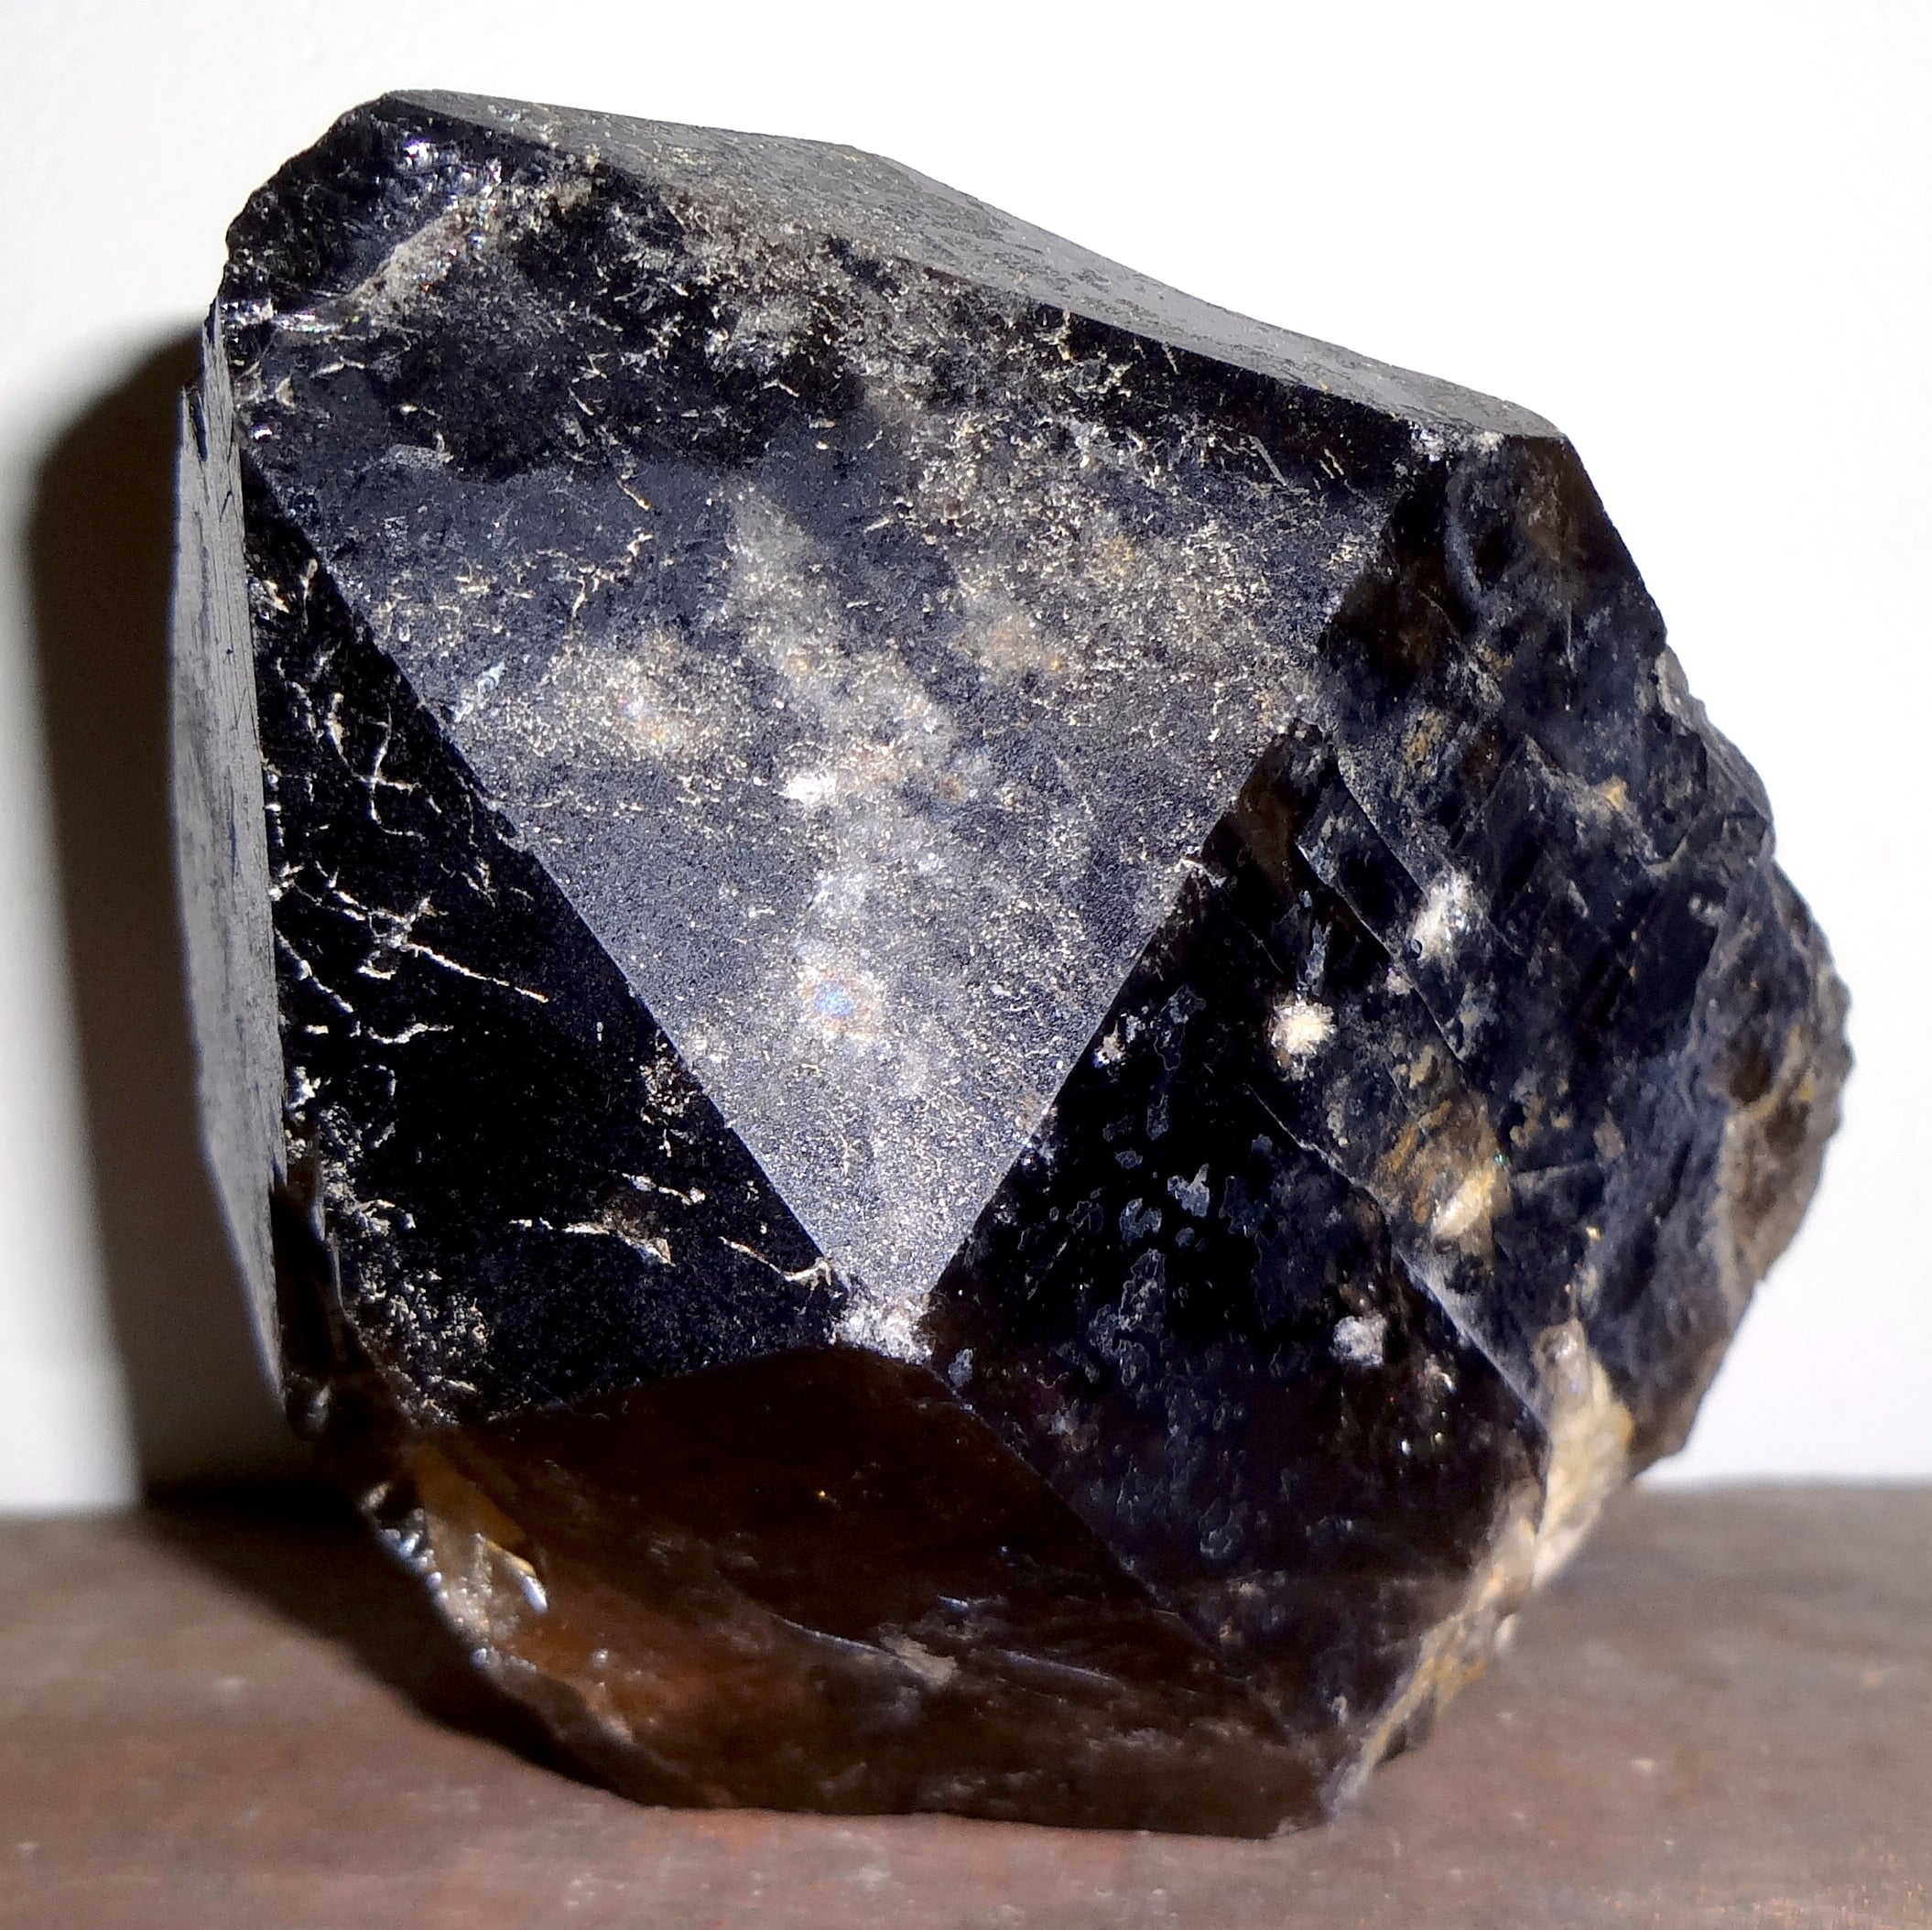 One of the author's treasures: a smoky black crystal.